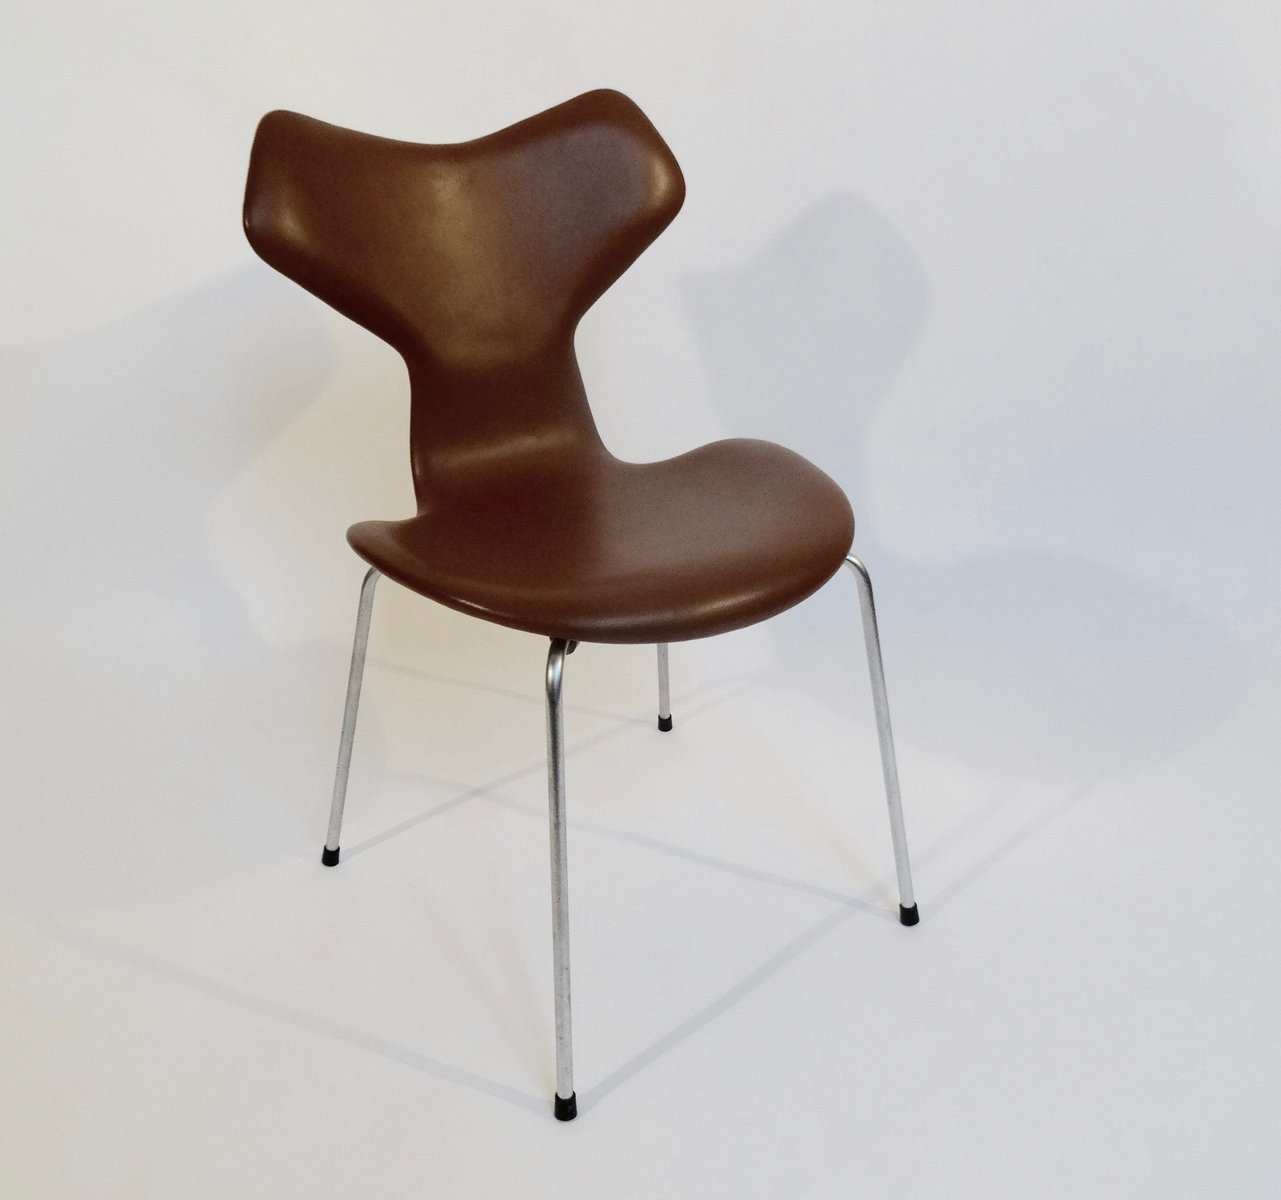 Grand prix chair by arne jacobsen for fritz hansen 1964 for Chaise cuir roche bobois prix